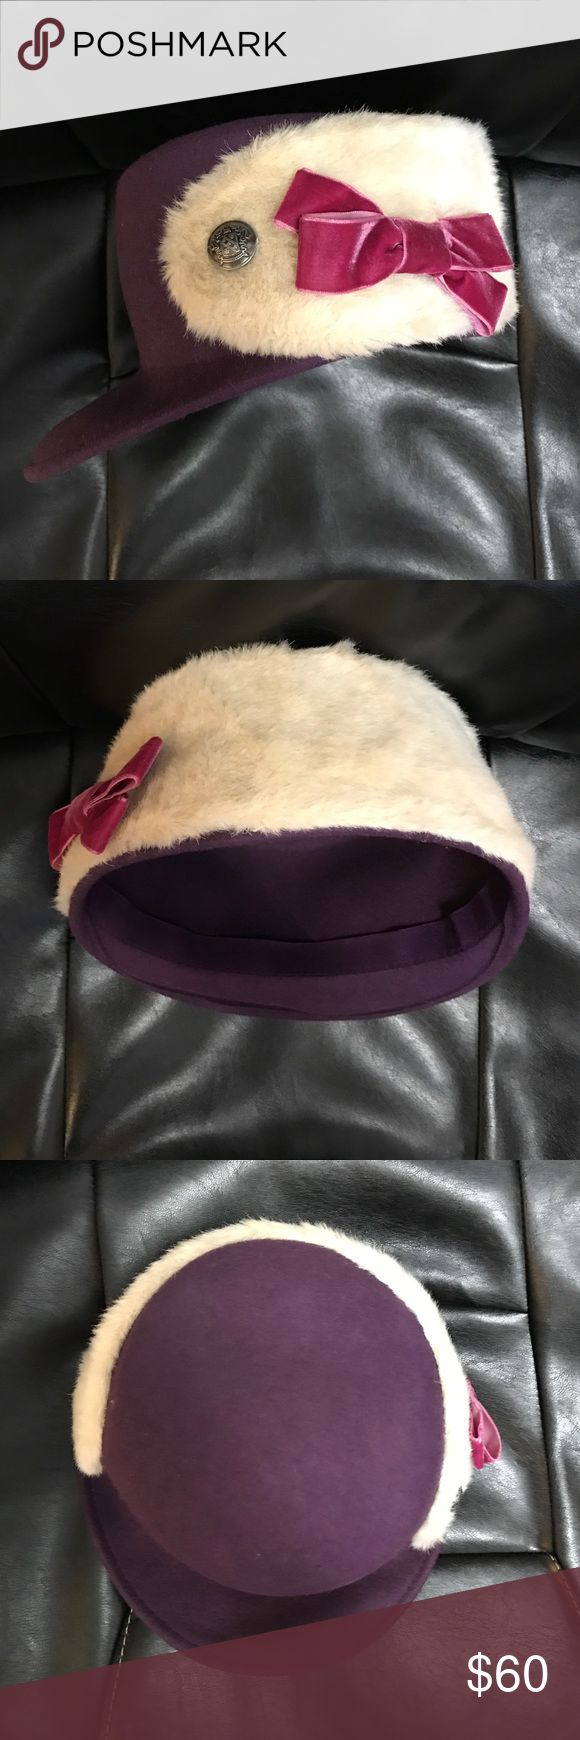 NWT Spanish brand Peregal Purple 100% Wool Hat Stylish 100% wool Spanish brand Peregal wool hat. Perfect for this winter! peregal Accessories Hats